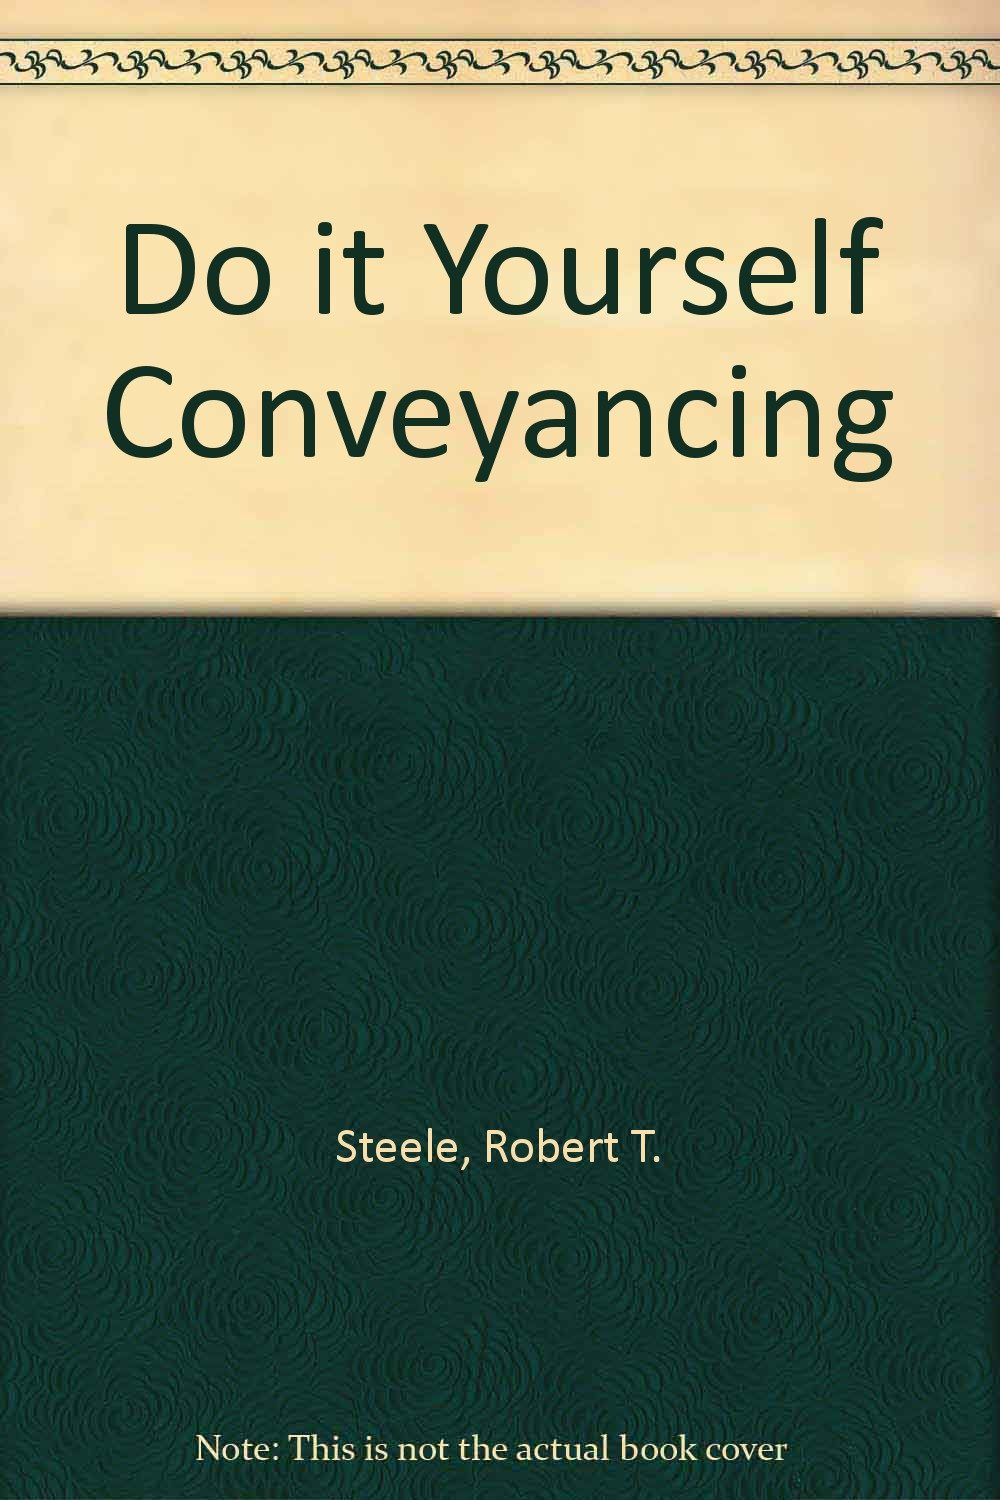 Amazon buy do it yourself conveyancing book online at low prices amazon buy do it yourself conveyancing book online at low prices in india do it yourself conveyancing reviews ratings solutioingenieria Images